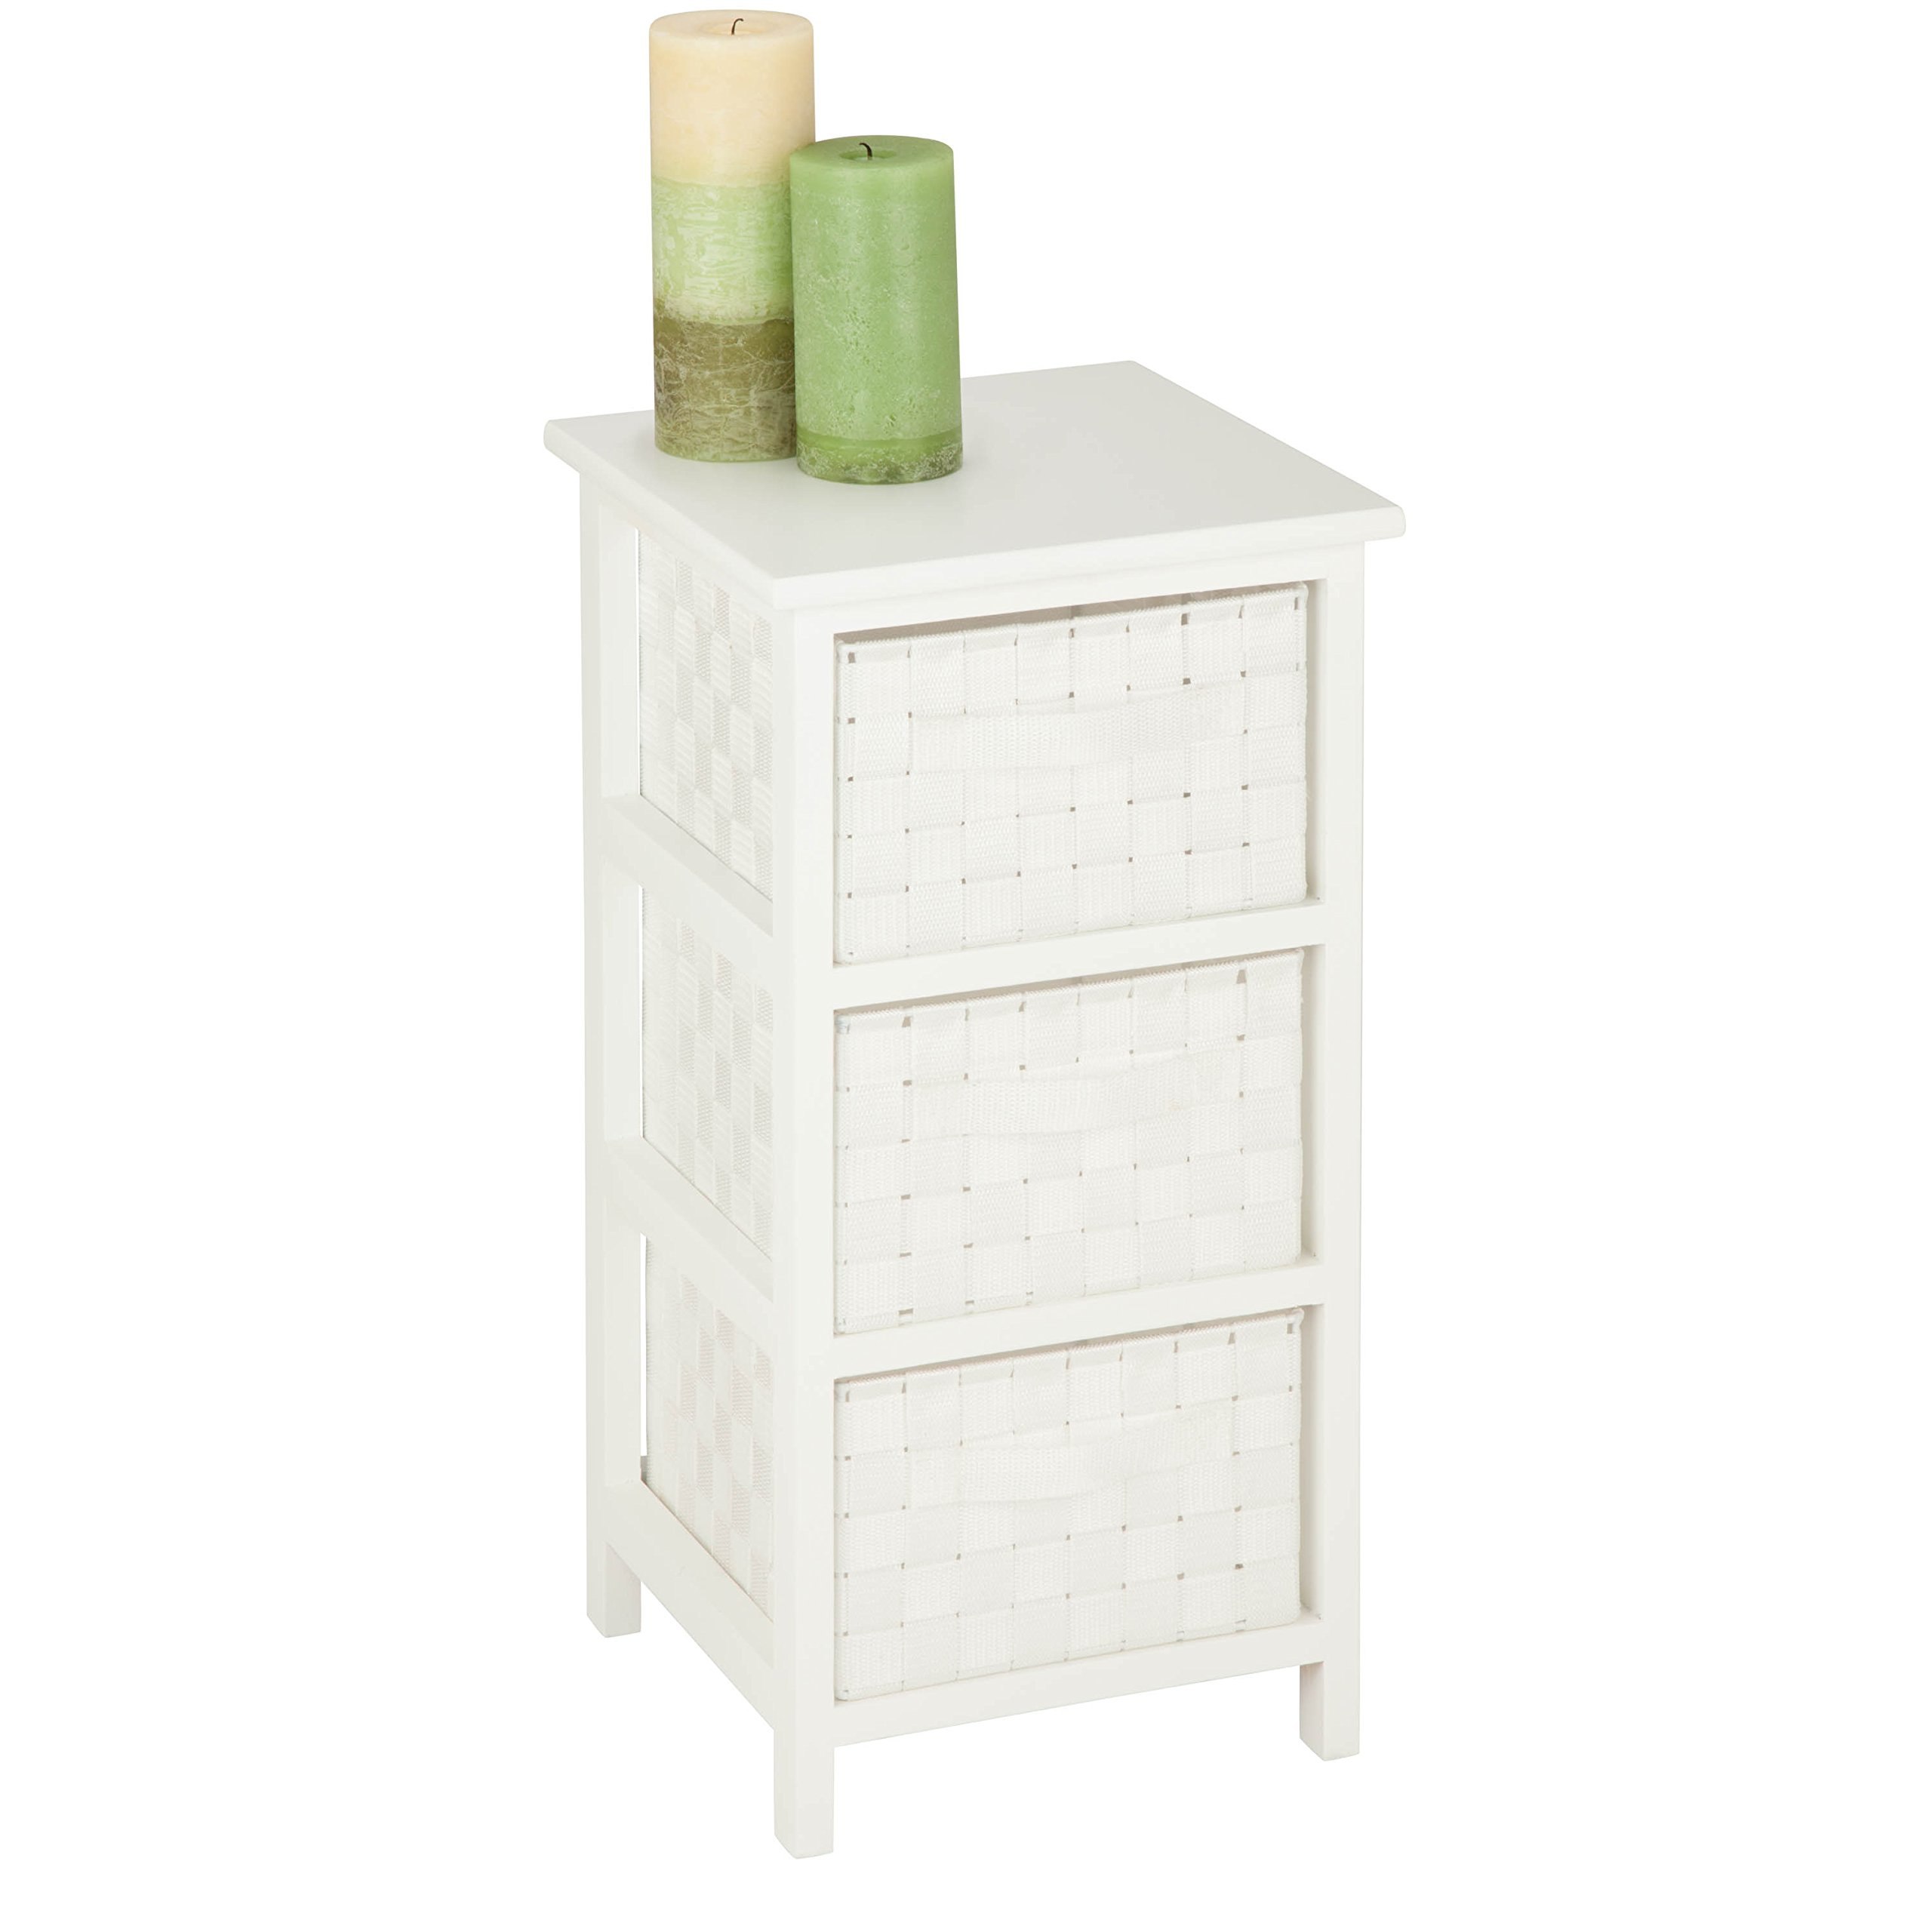 Honey-Can-Do OFC-03717 3-Drawer Storage Organizer Chest with Natural Wood Frame, White, 12.01L x 24.80H